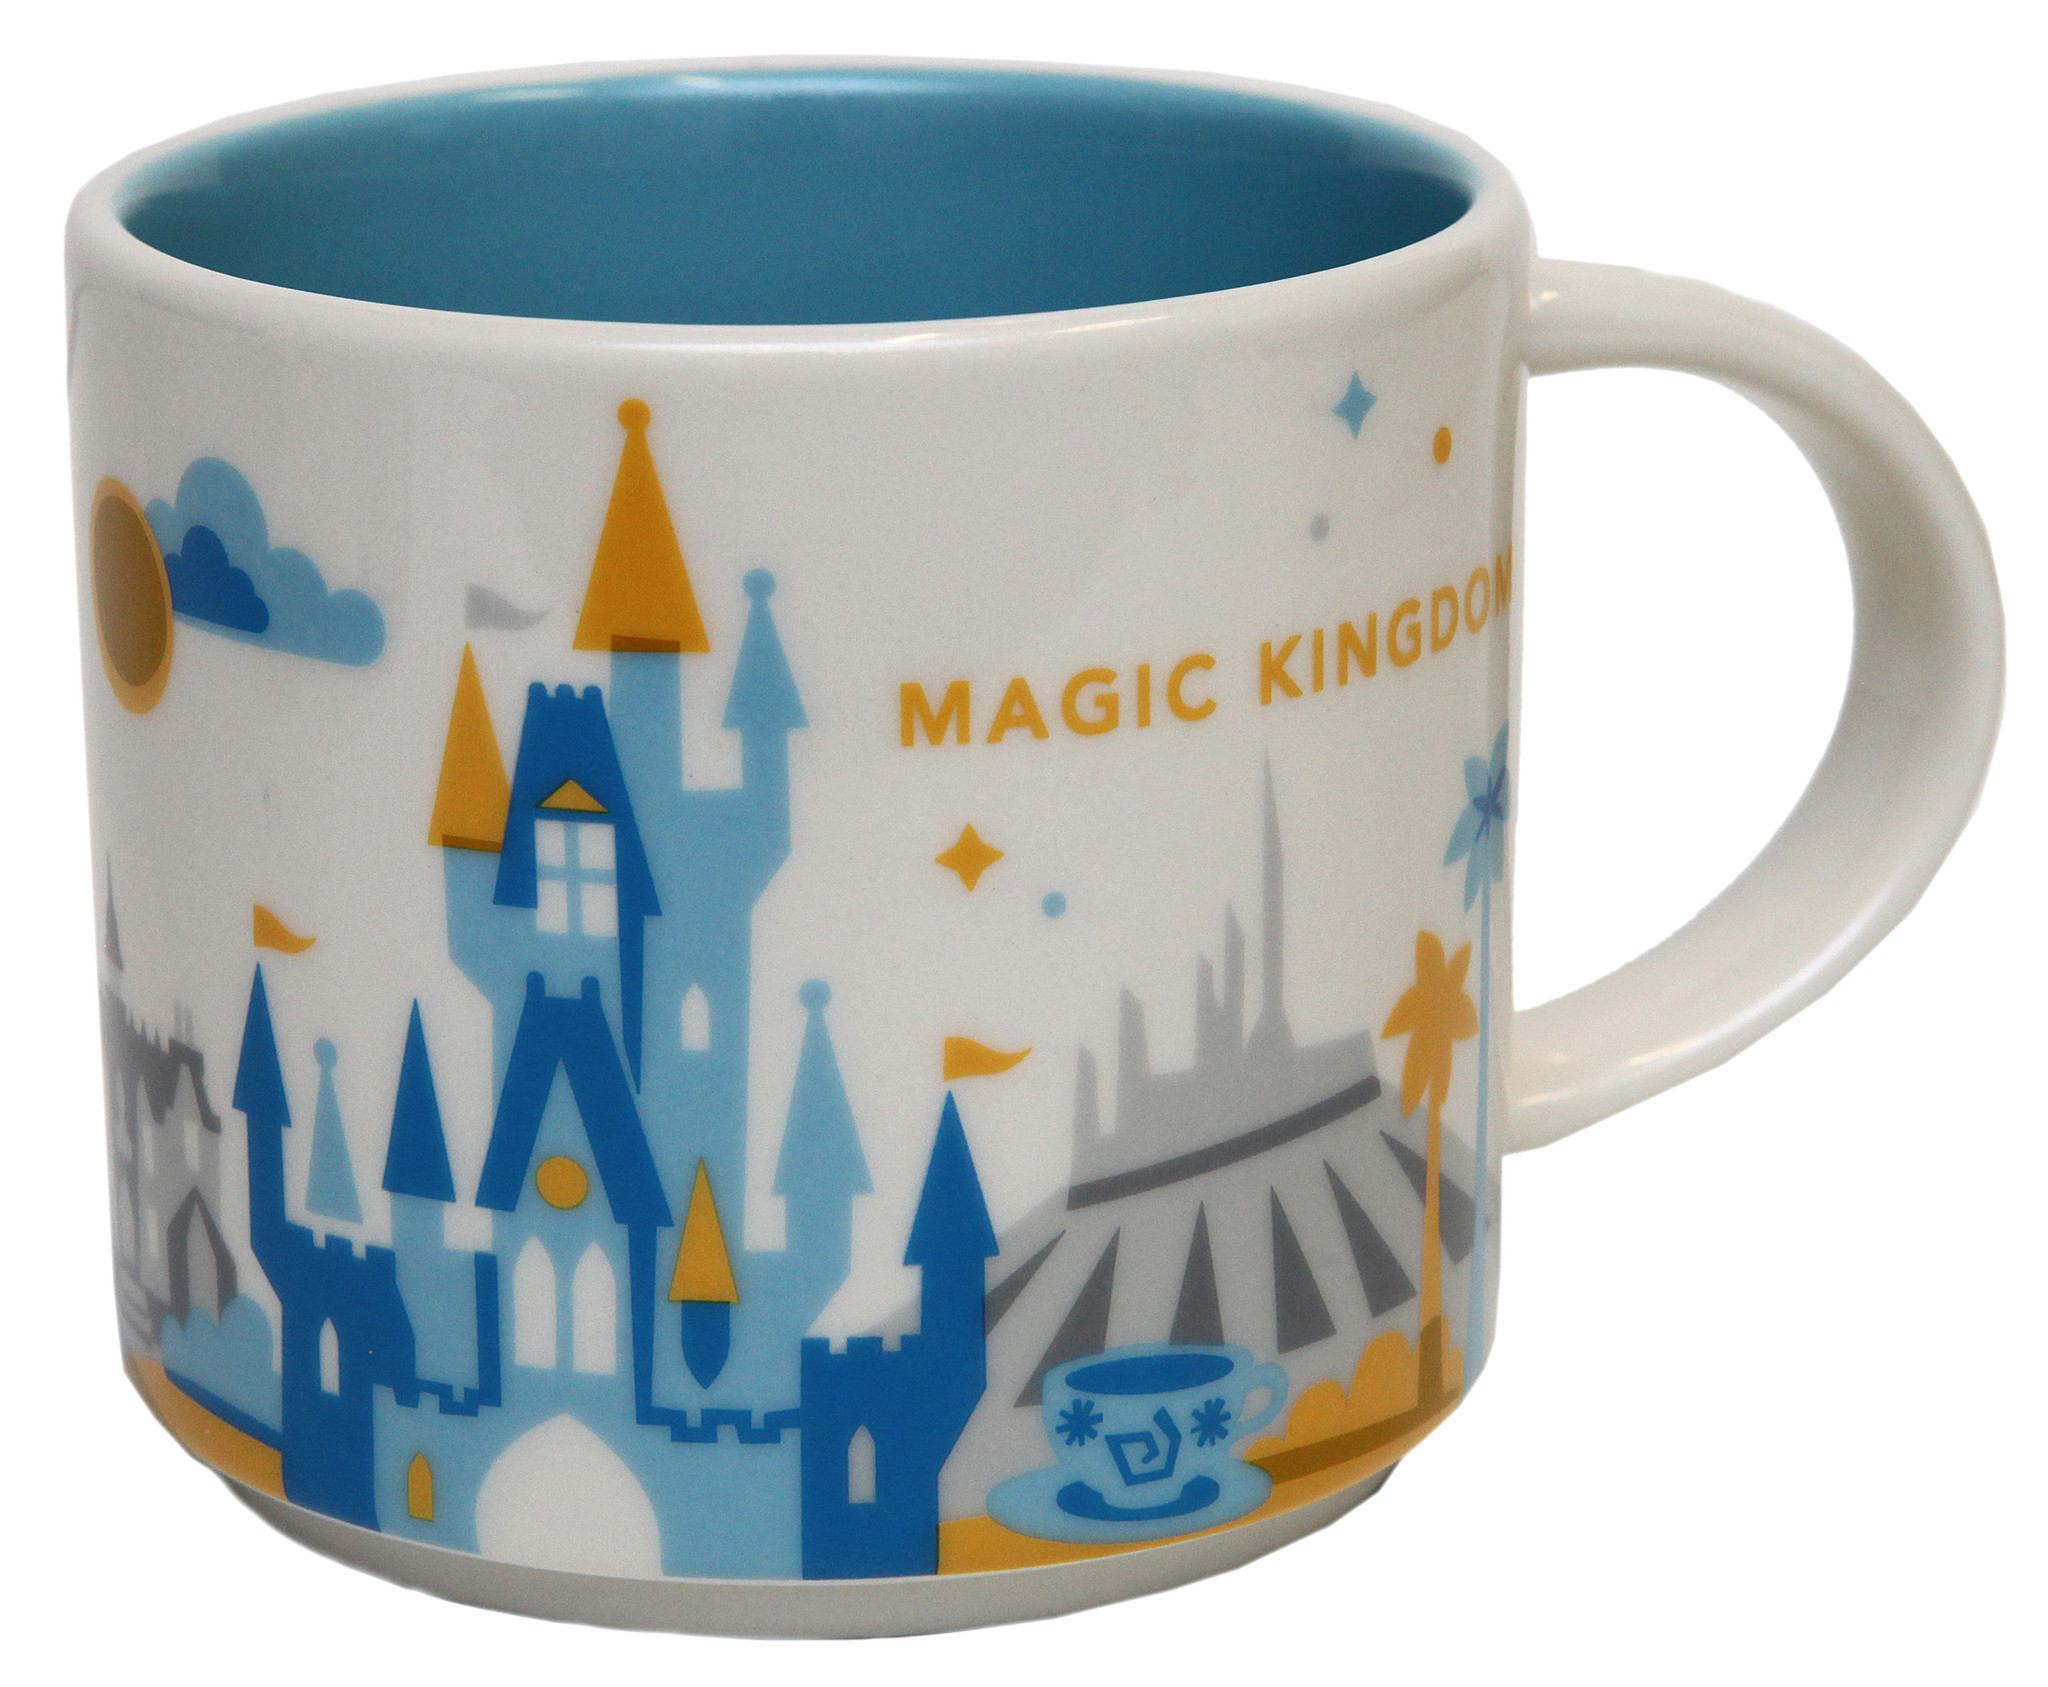 Starbucks Locations Selling Disney World Mugs Orlando